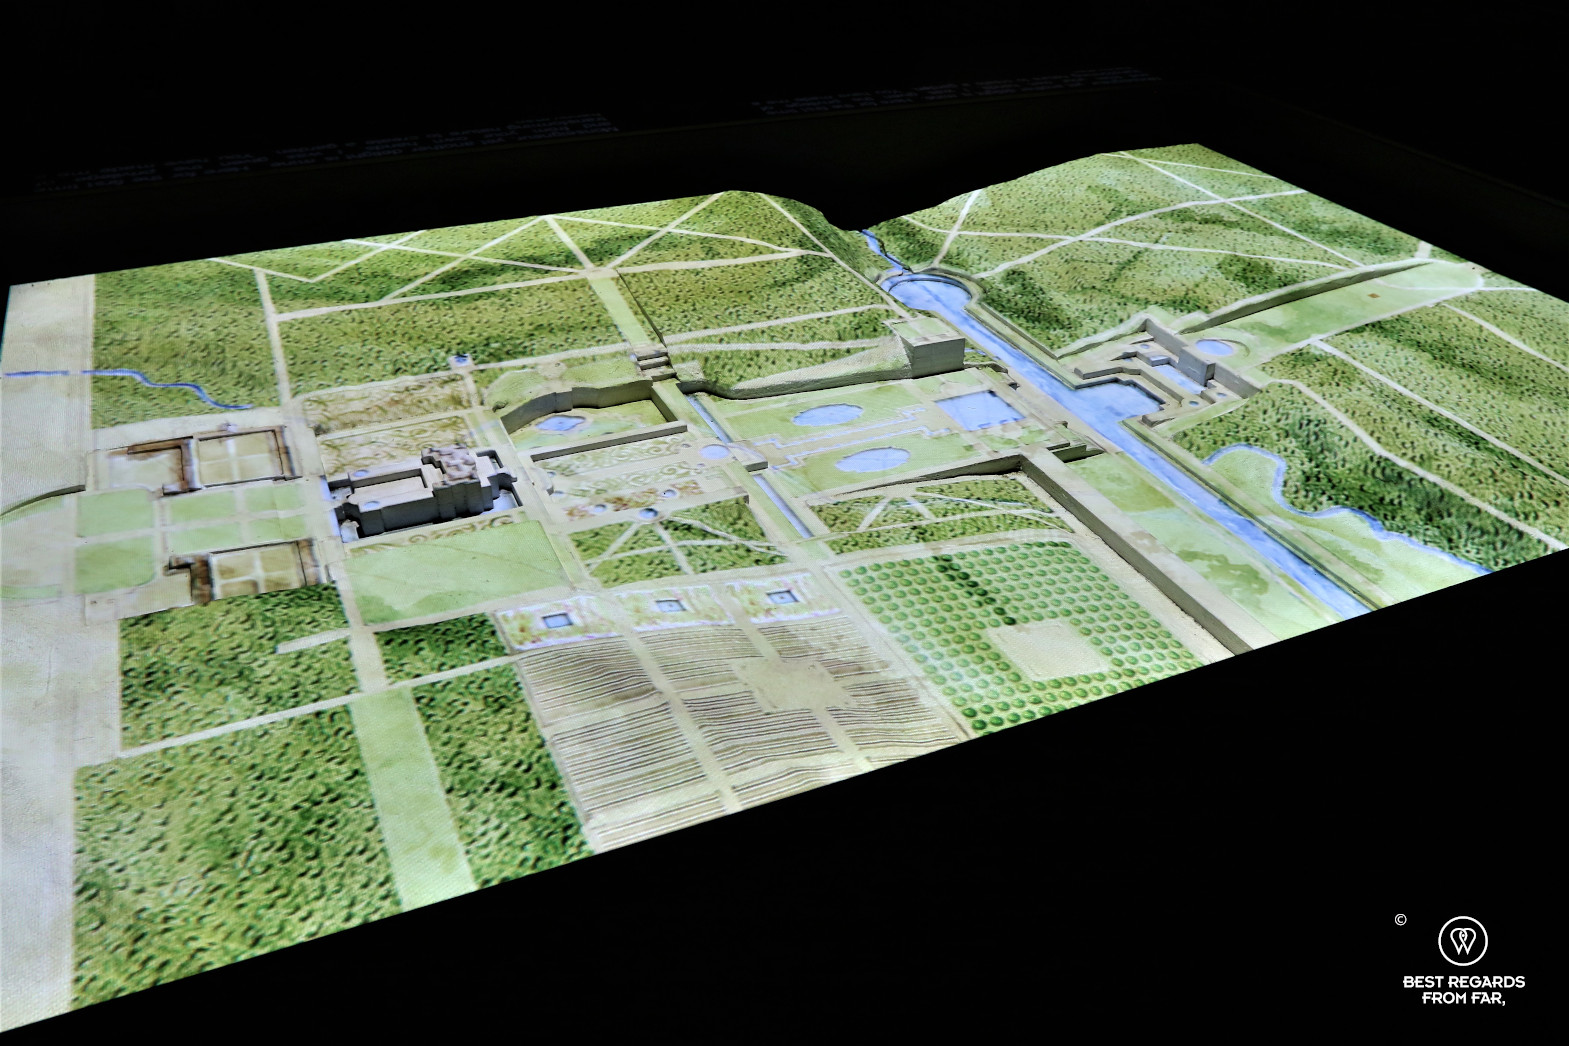 3D rendering of the gardens of Vaux-le-Vicomte showing elevation and rivers